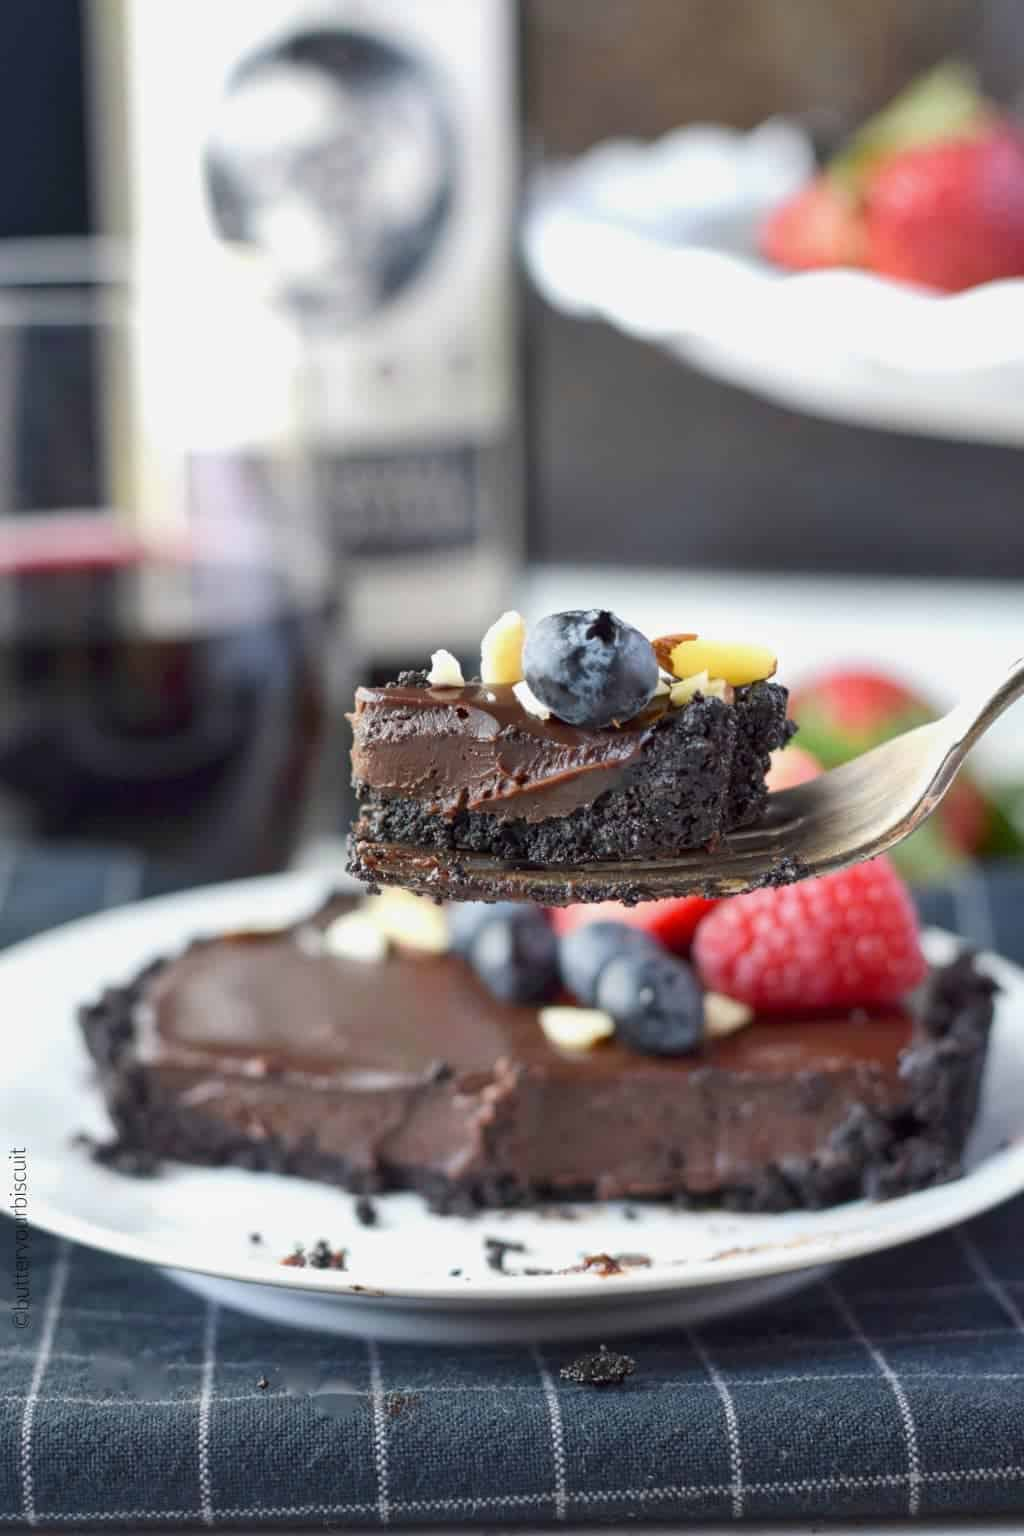 No bake chocolate mini tarts with strawberries, blueberries, rasberries and almond slivers on top on a white plate with a bite on a fork